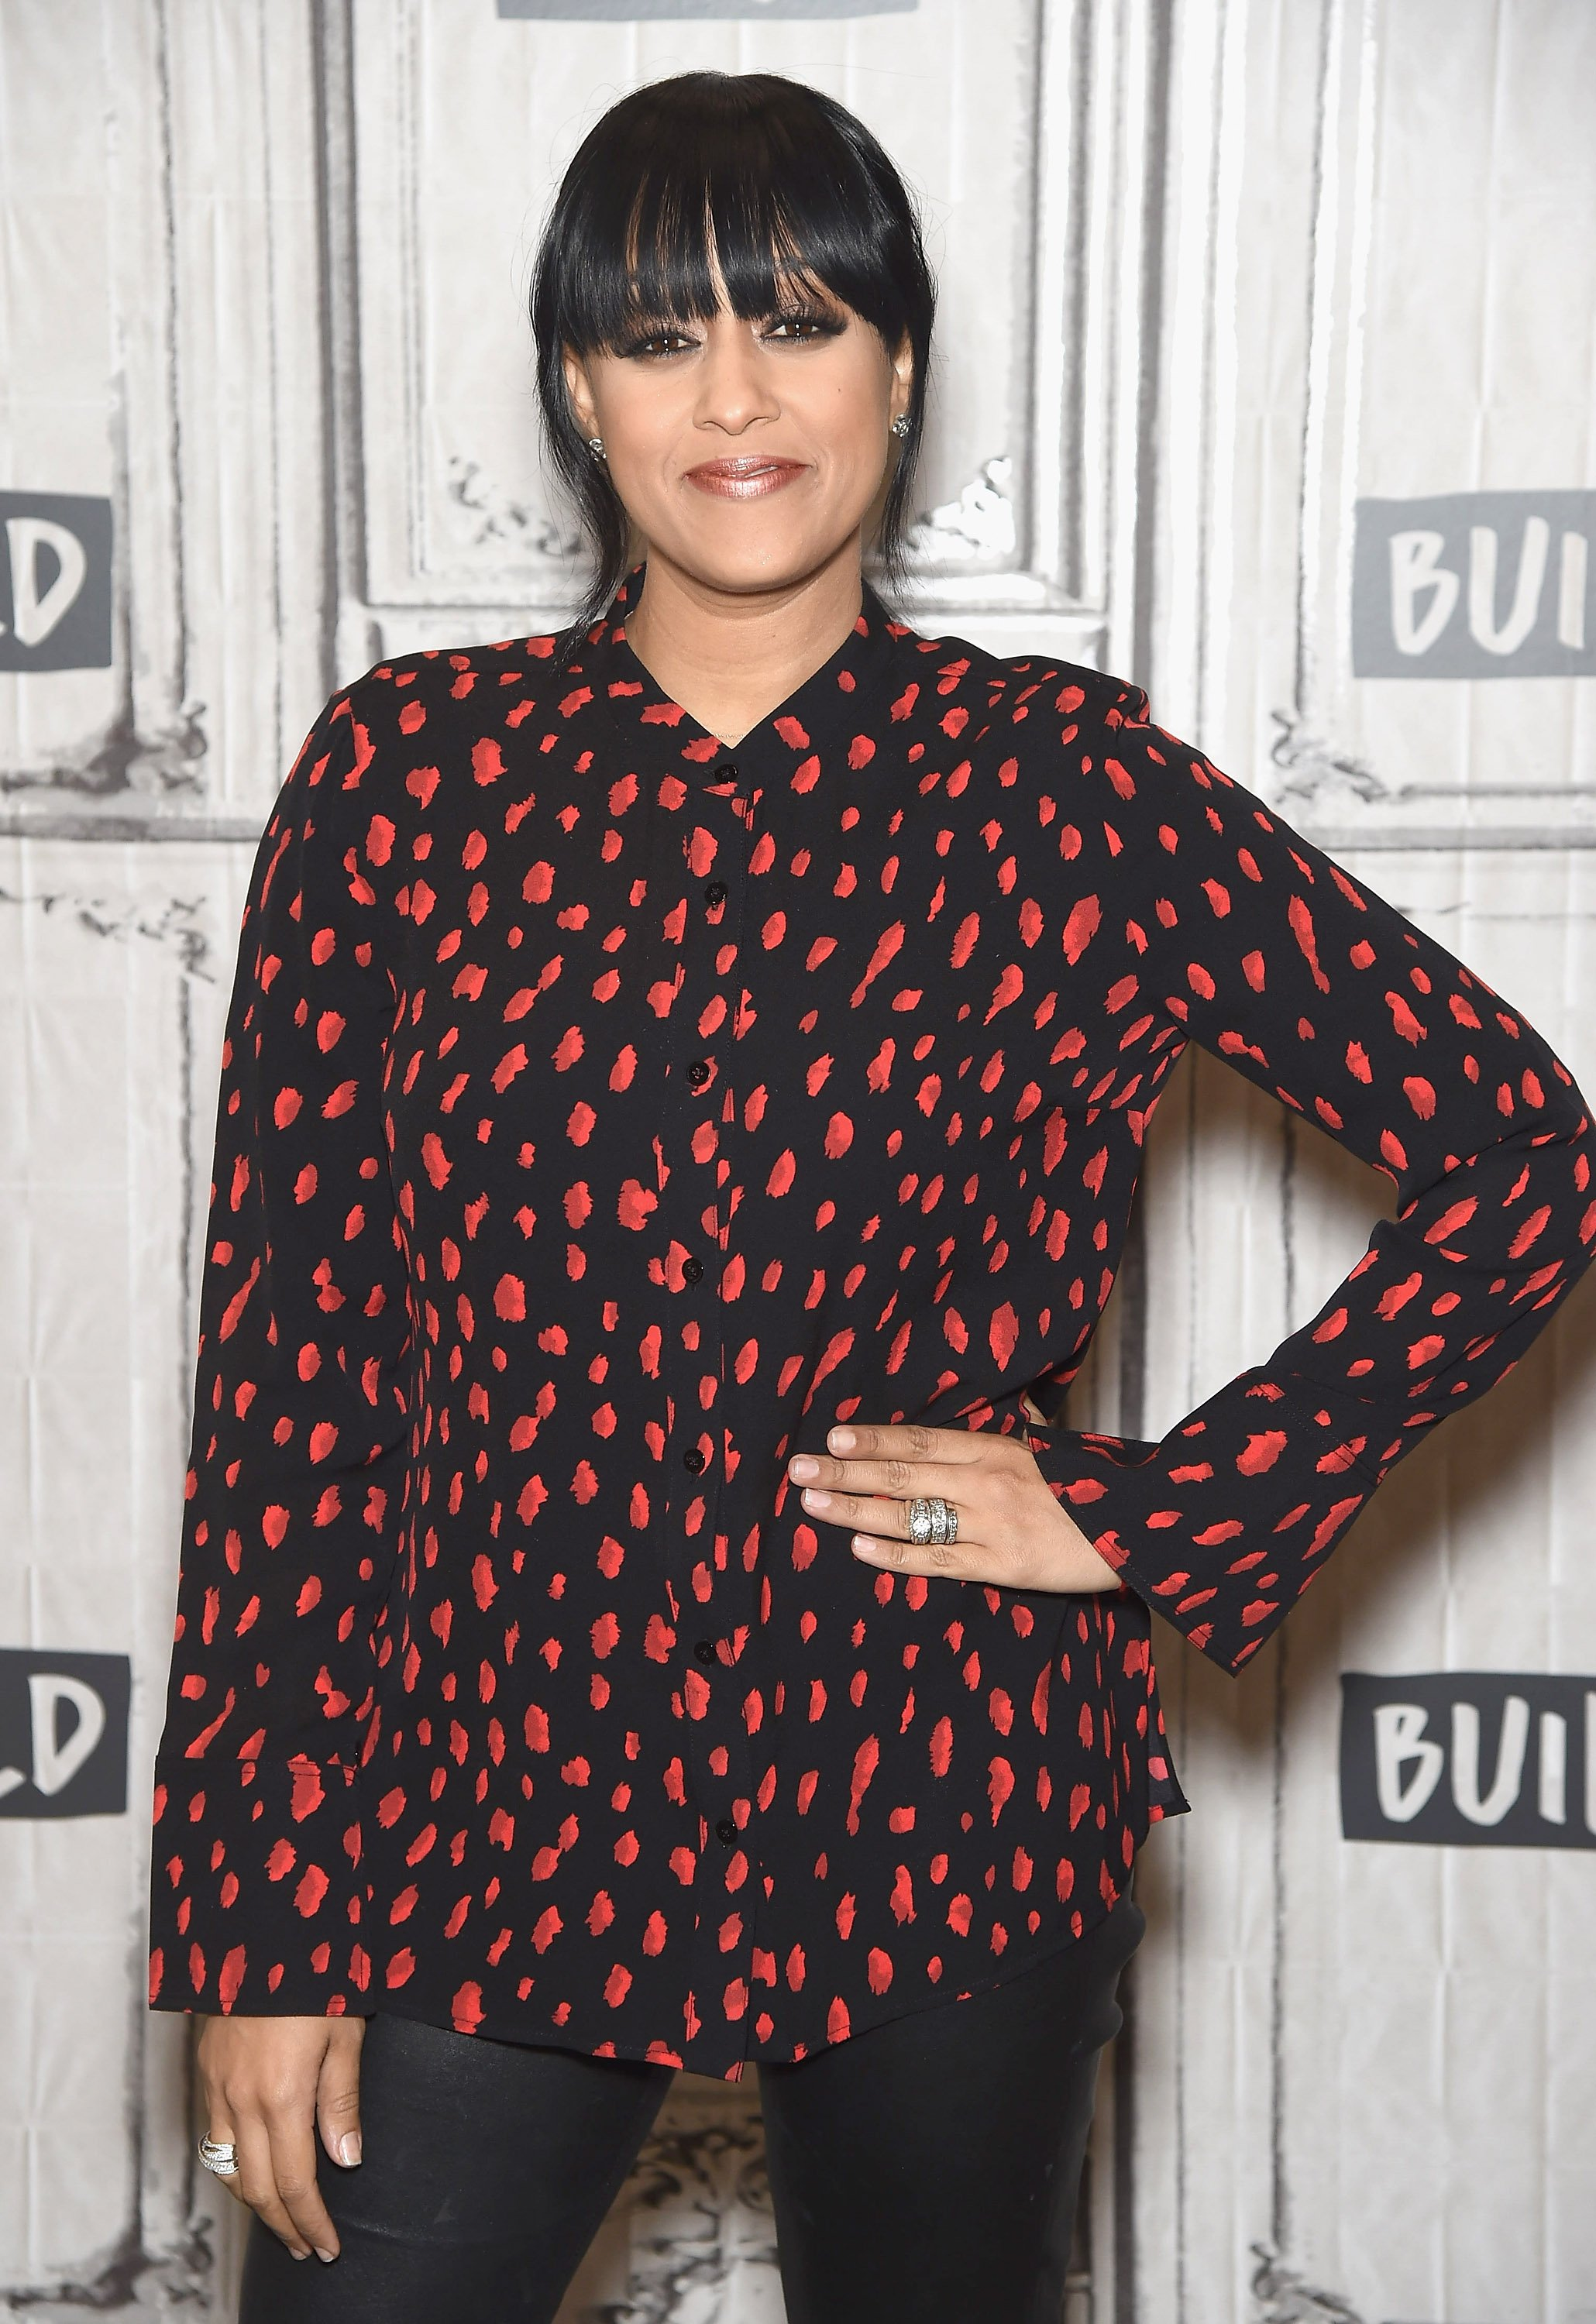 """Tia Mowry at Build Series to discuss her new book """"Whole New You"""" on March 16, 2017   Photo: Getty Images"""